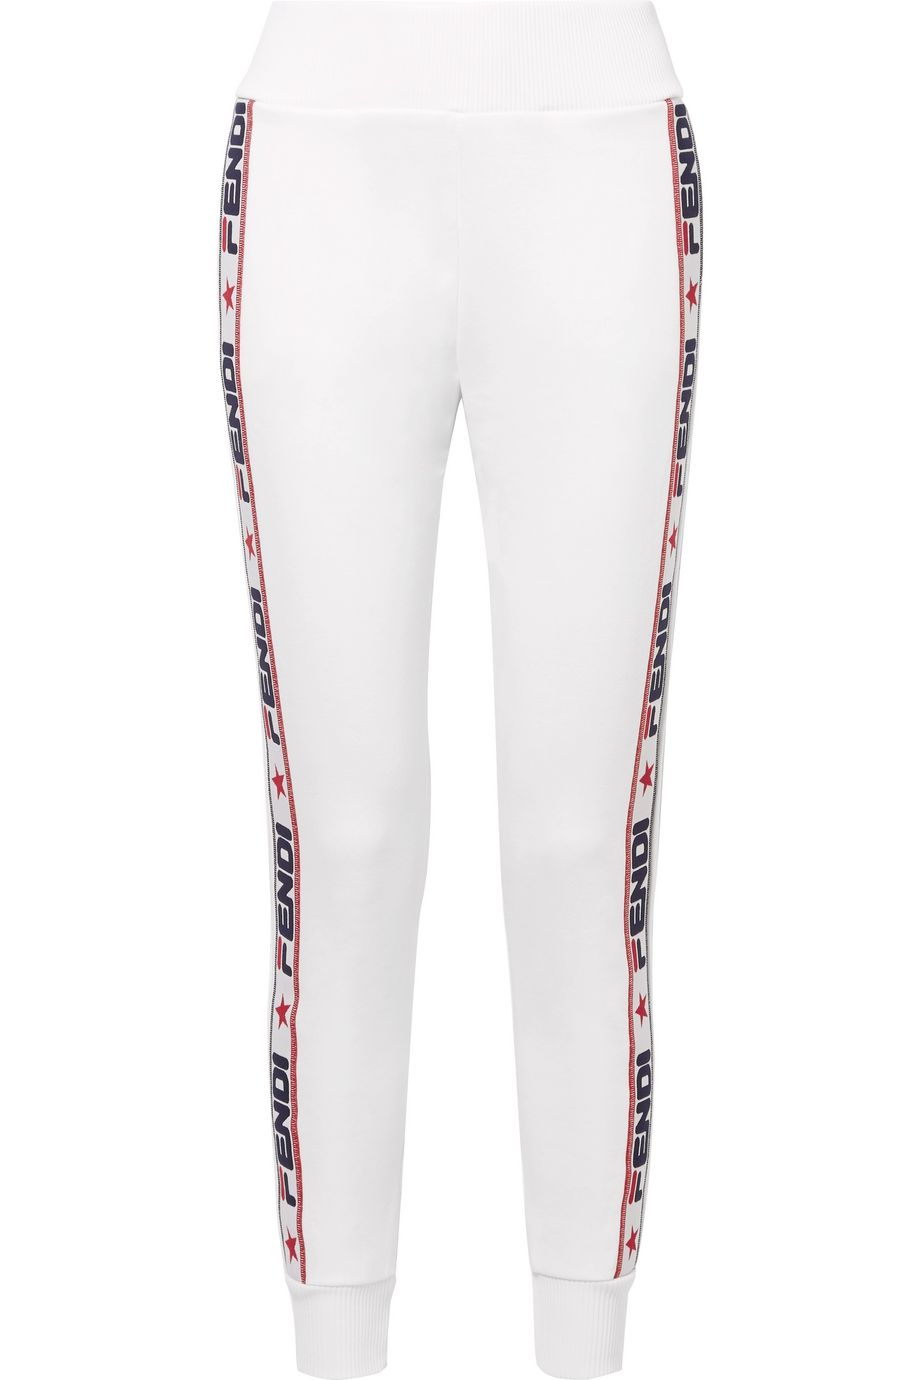 Fendi Appliquéd cotton-blend jersey track pants